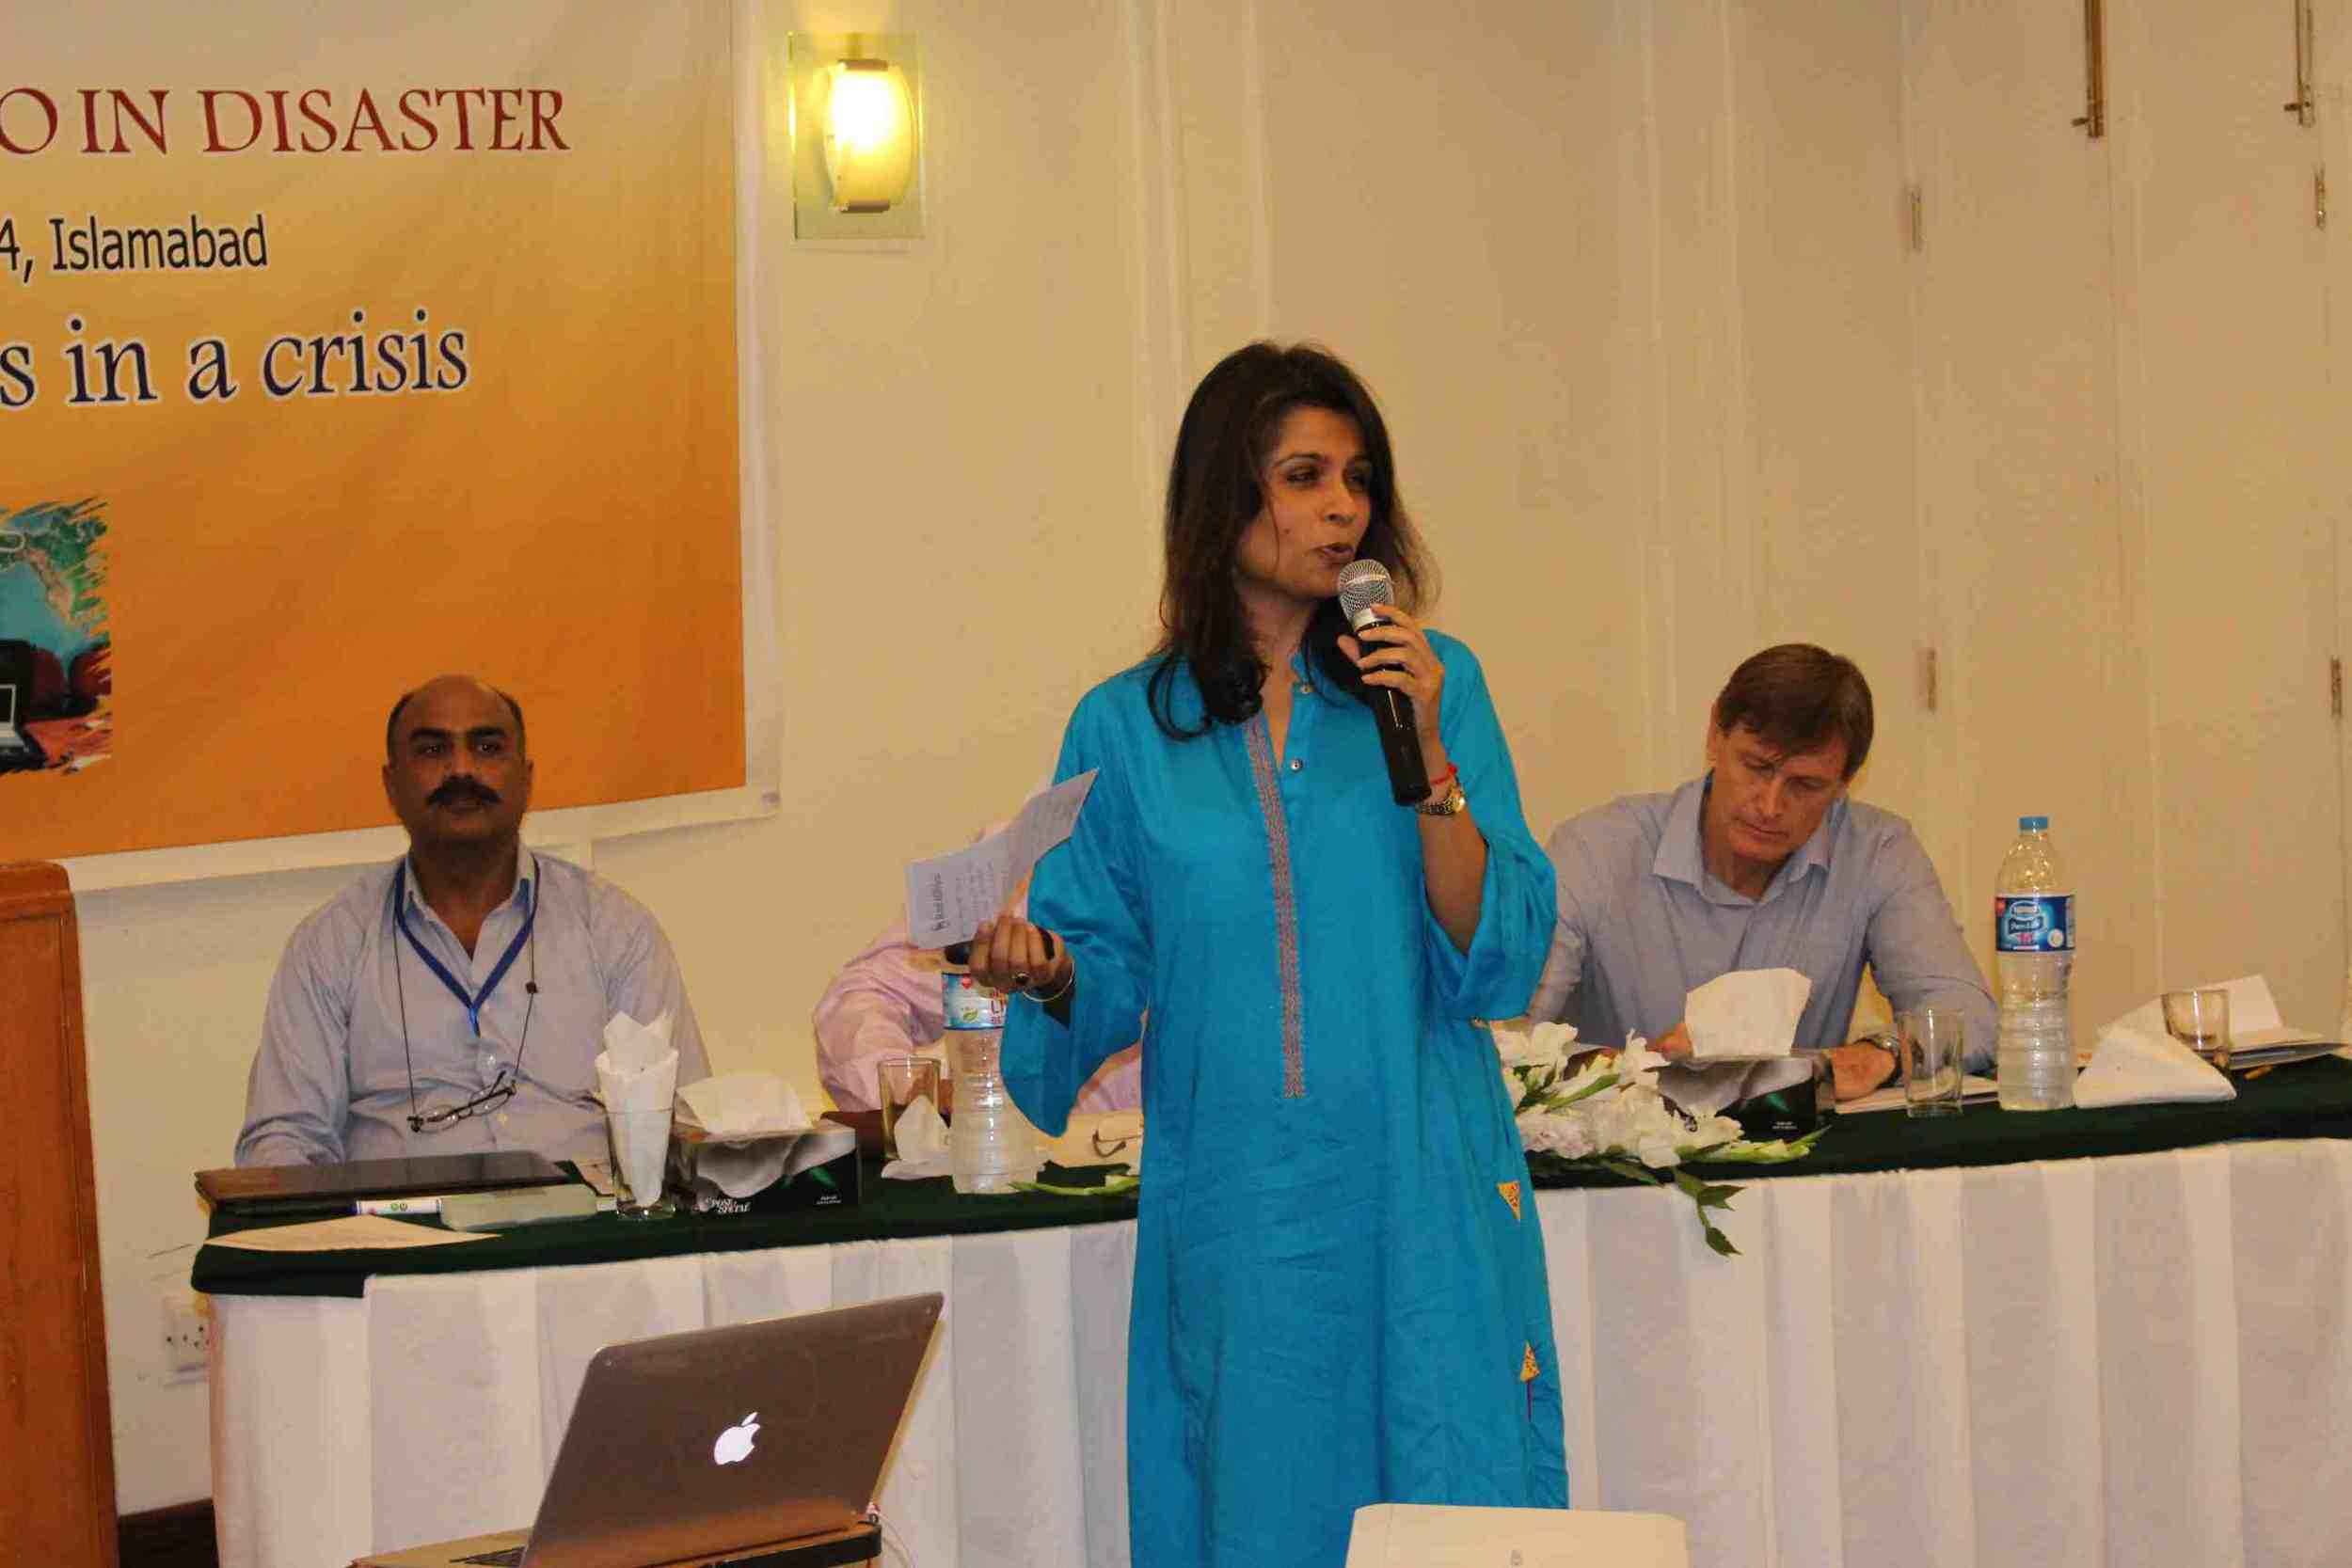 IOM's Naima Saeed speaking at the First Response Radio inaugural event in Islamabad